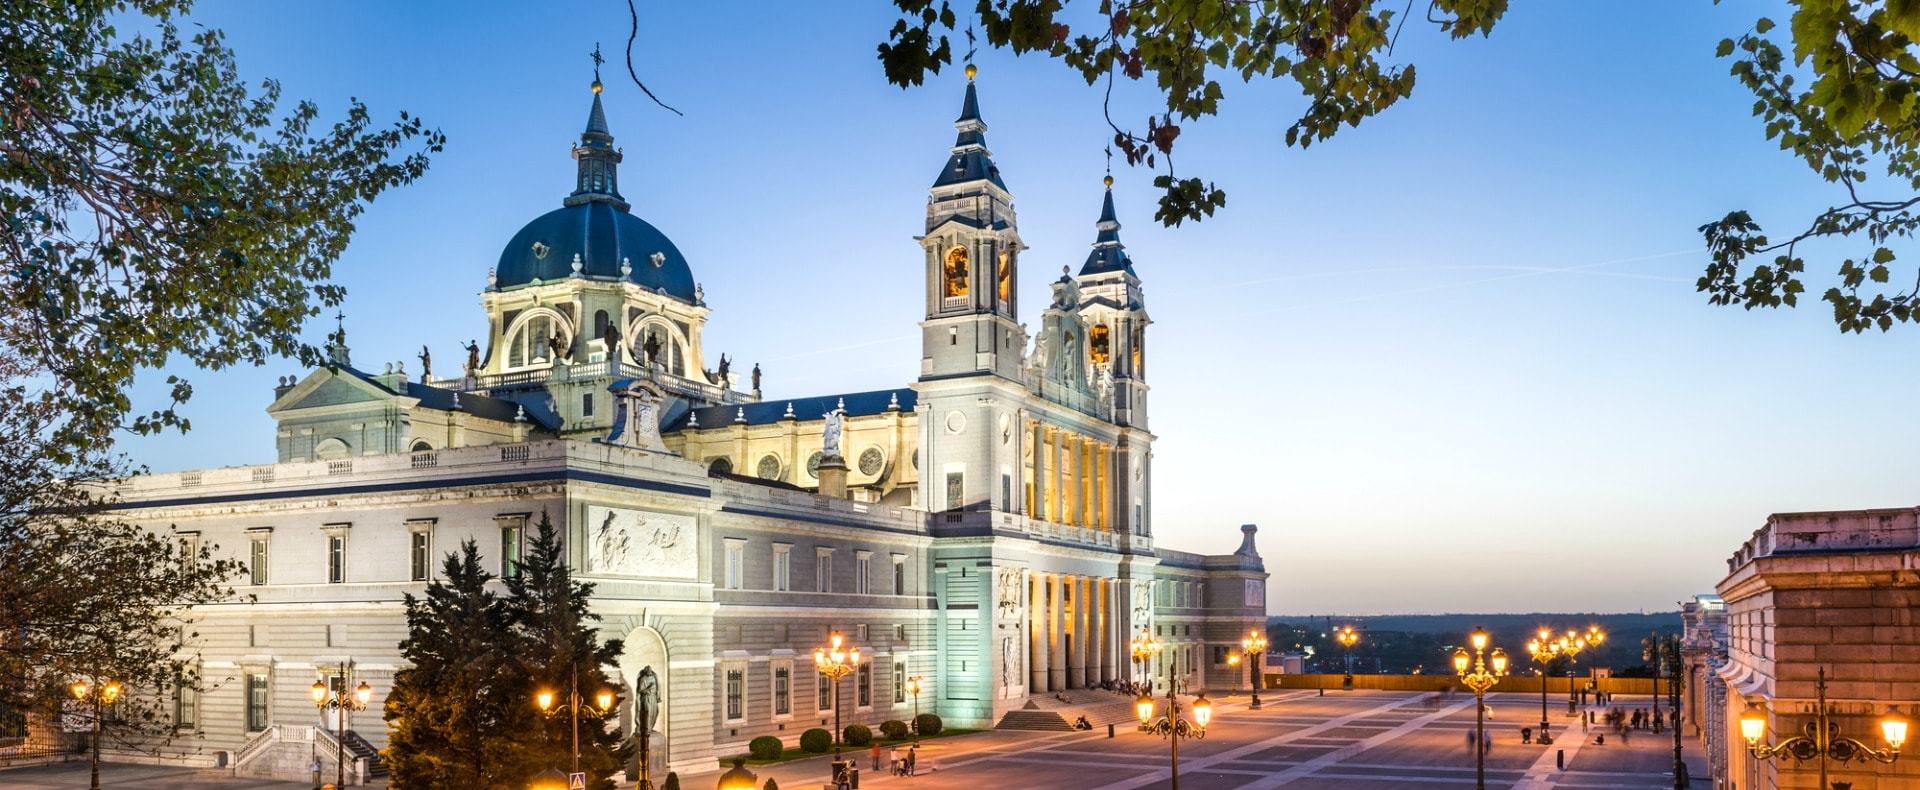 Almudena Cathedral Near Royal Palace, Madrid